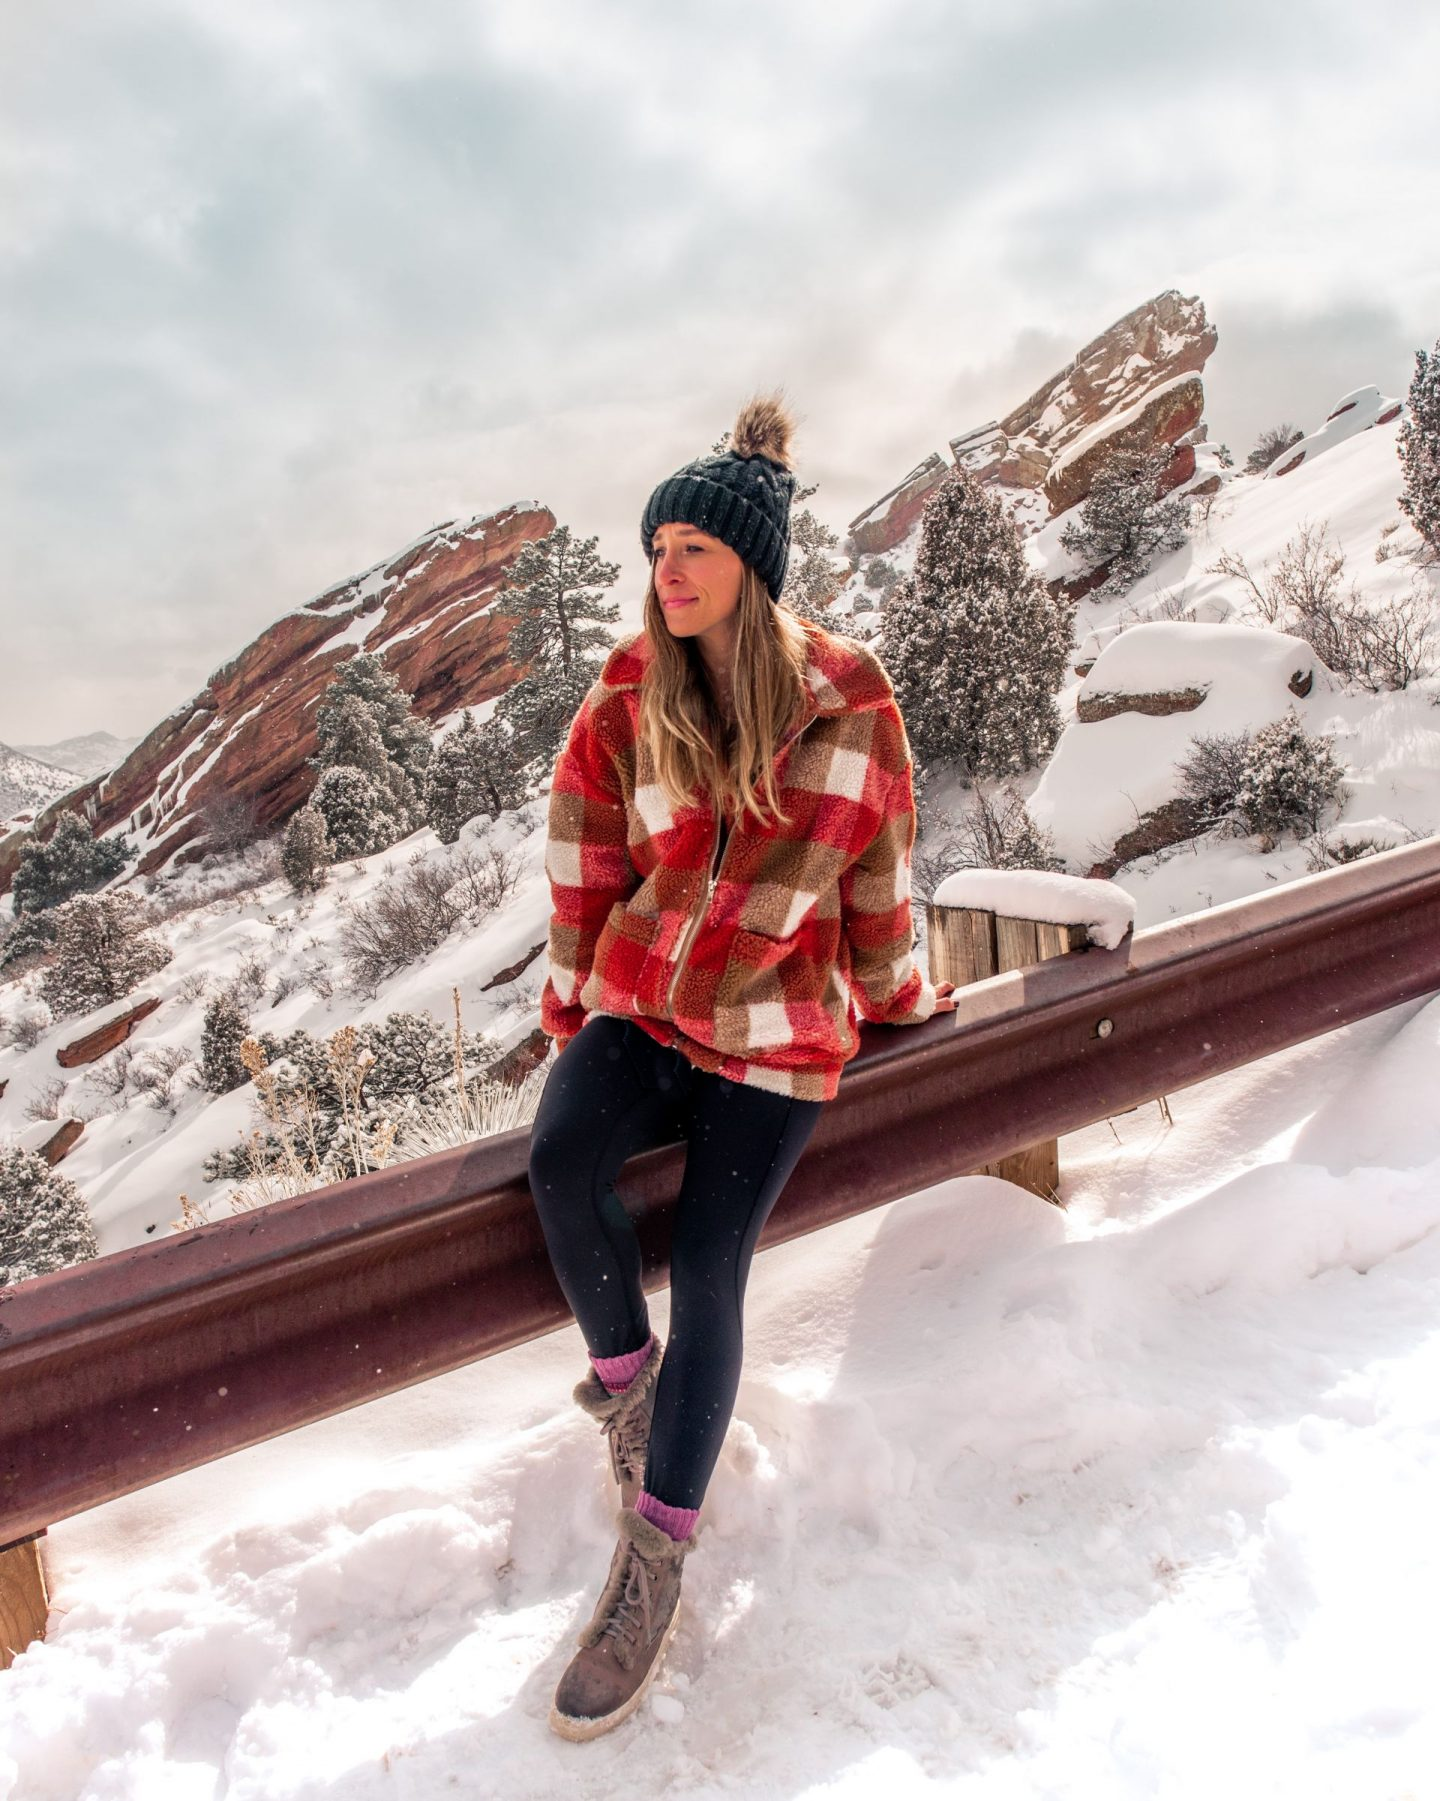 Exploring Colorado: 5 Places To See In Denver & The Neighboring Areas